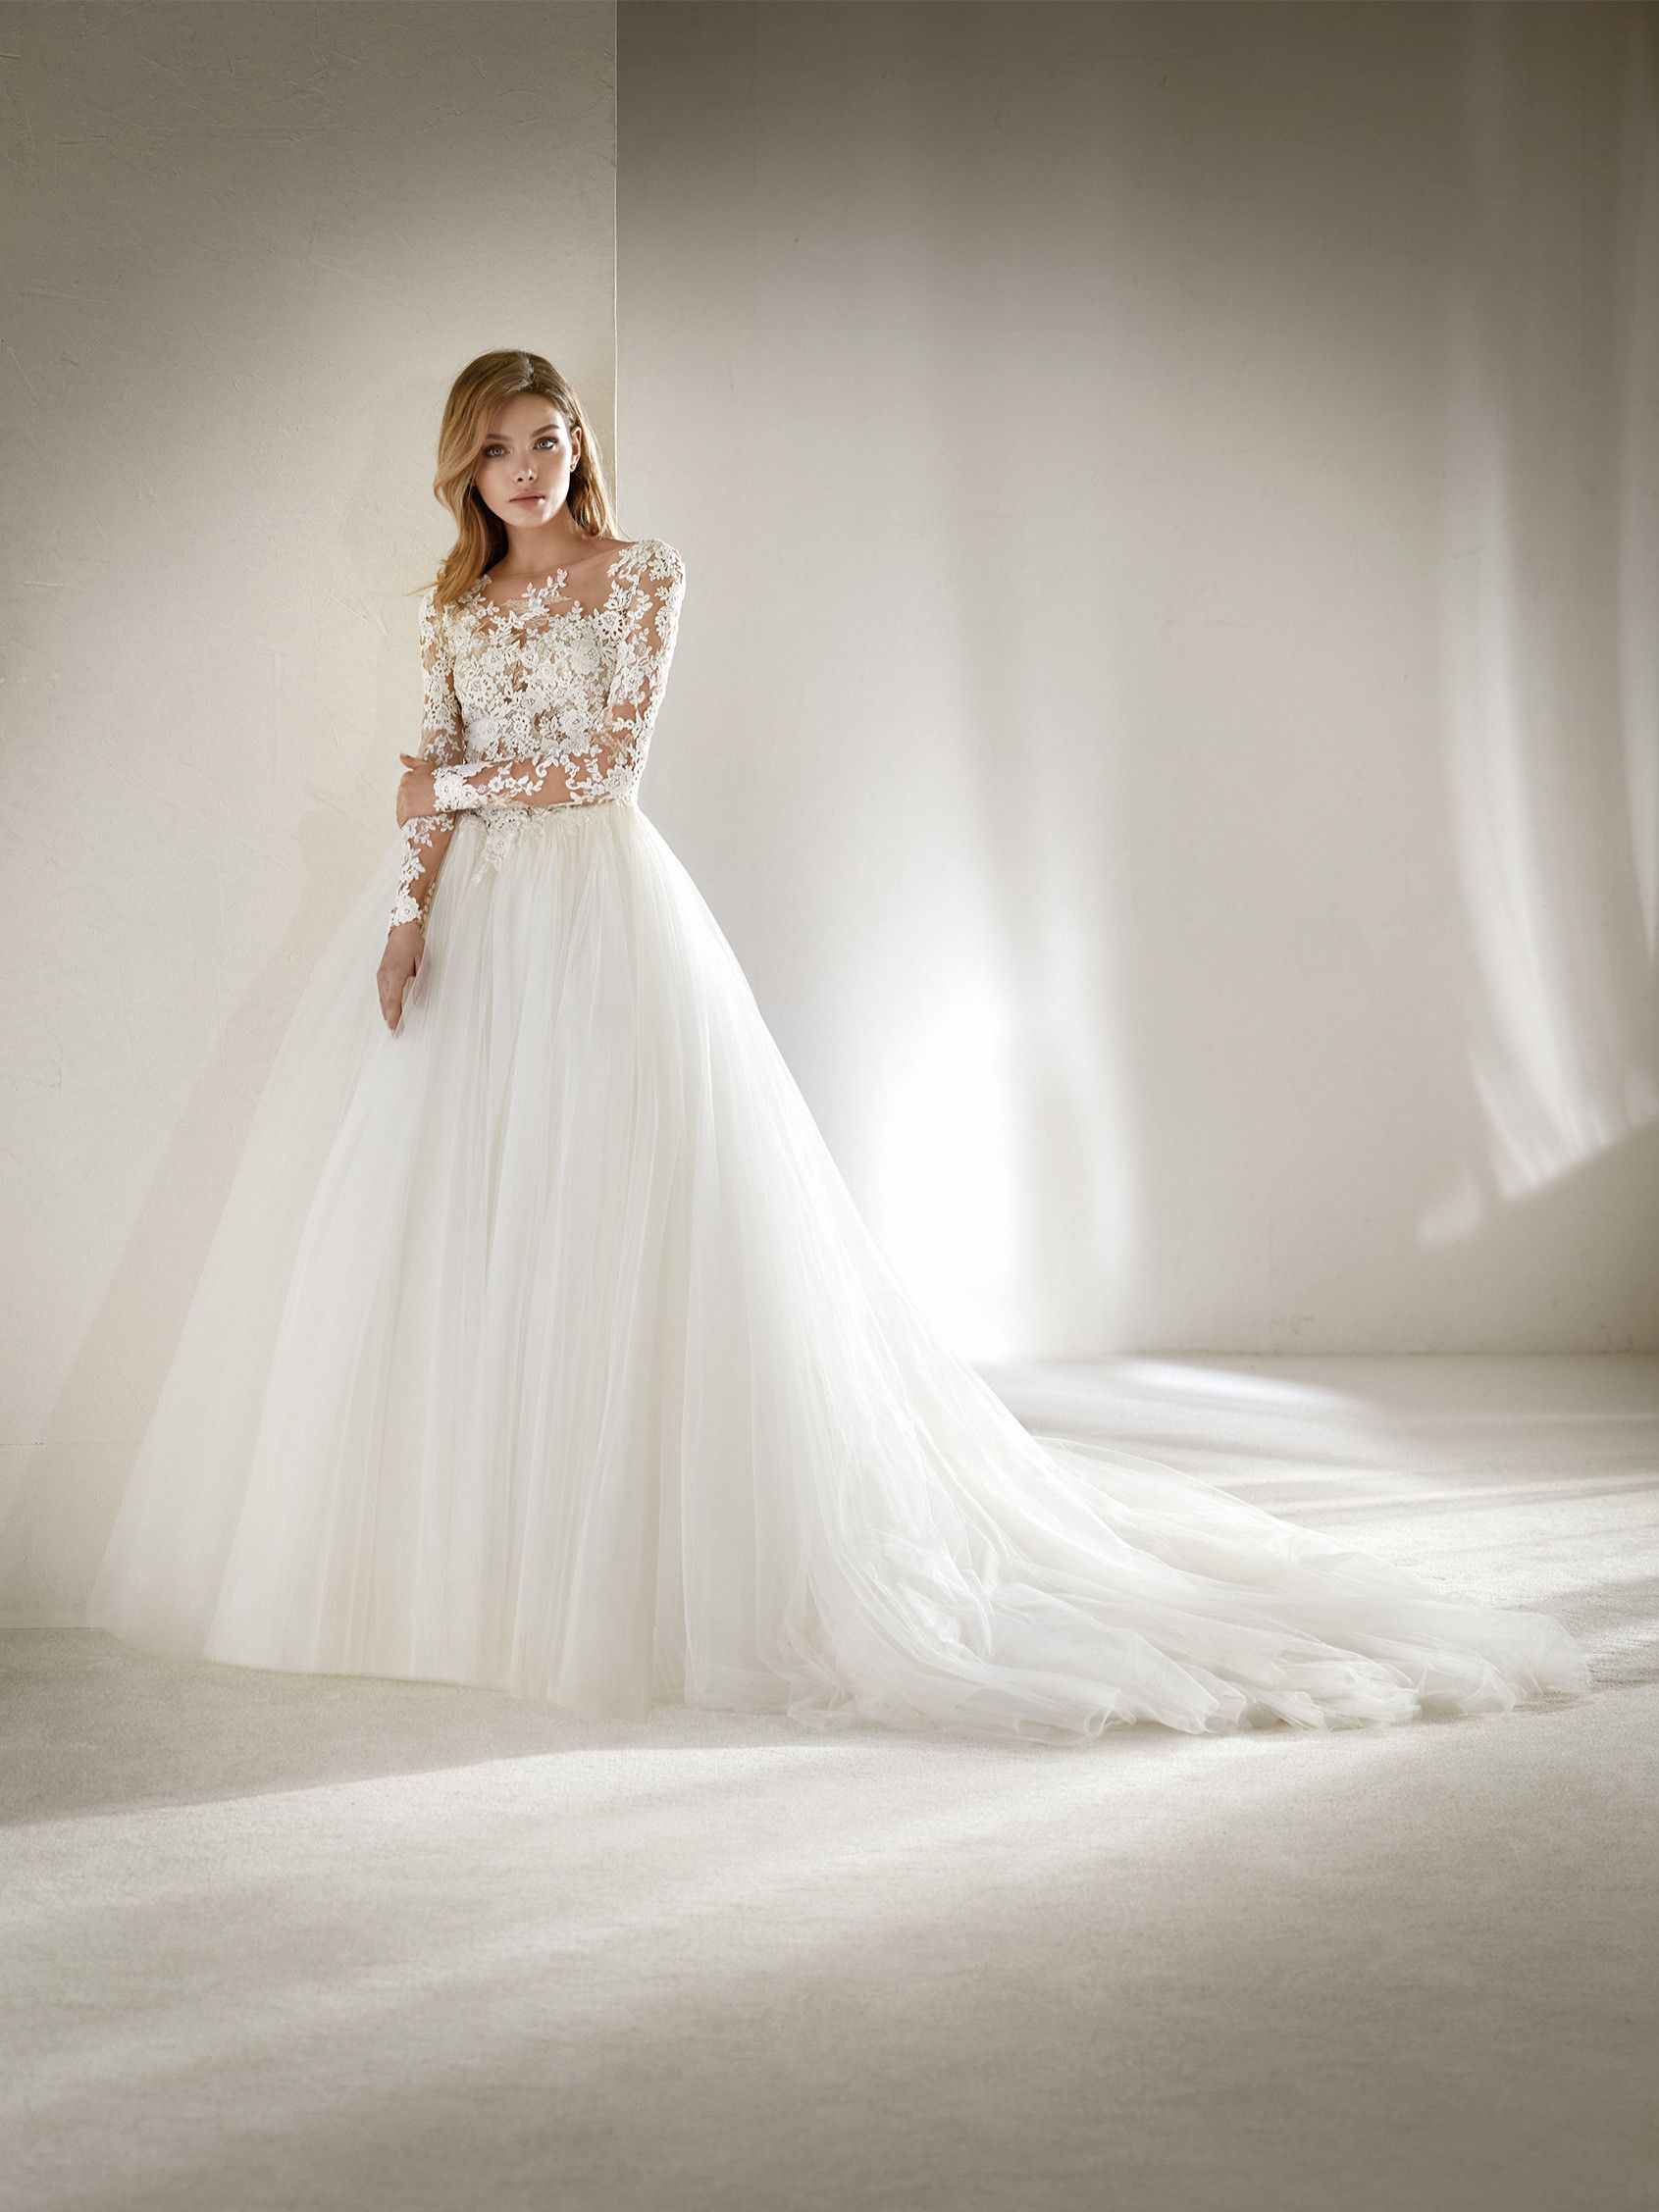 dopal petite #pronovias #weddingdress (mit Bildern)  Pronovias